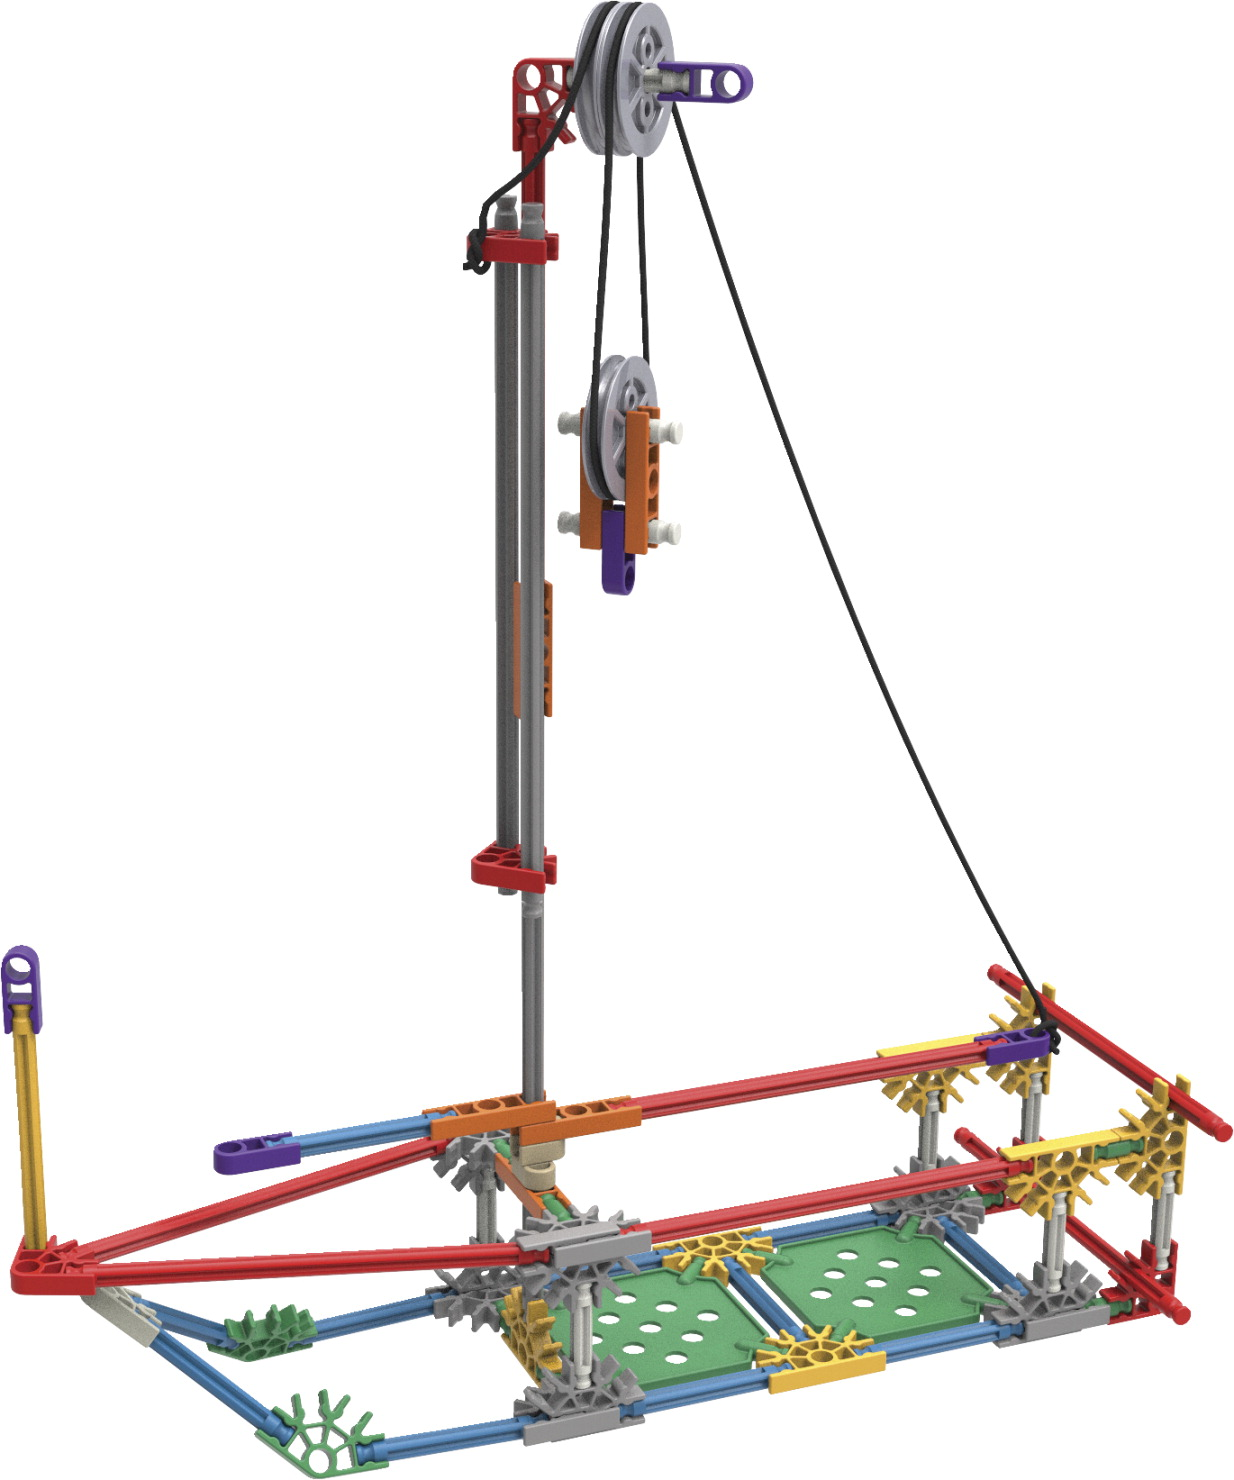 K'NEX STEM Explorations Levers and Pulleys Building Set, 139 Pieces